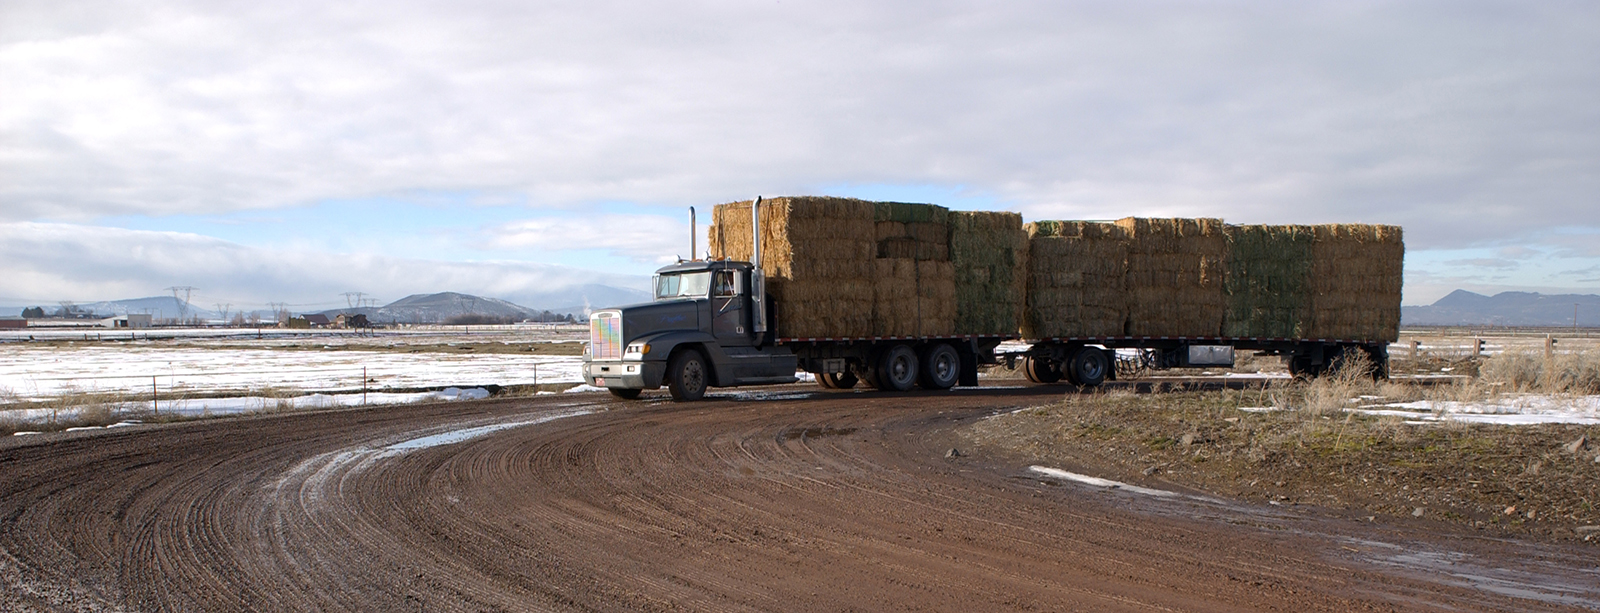 Hay leaving Klamath Falls, Oregon. Most Oregon hay is used in the Pacific Northwest and northern California. About 10 percent goes to Japan and Korea.